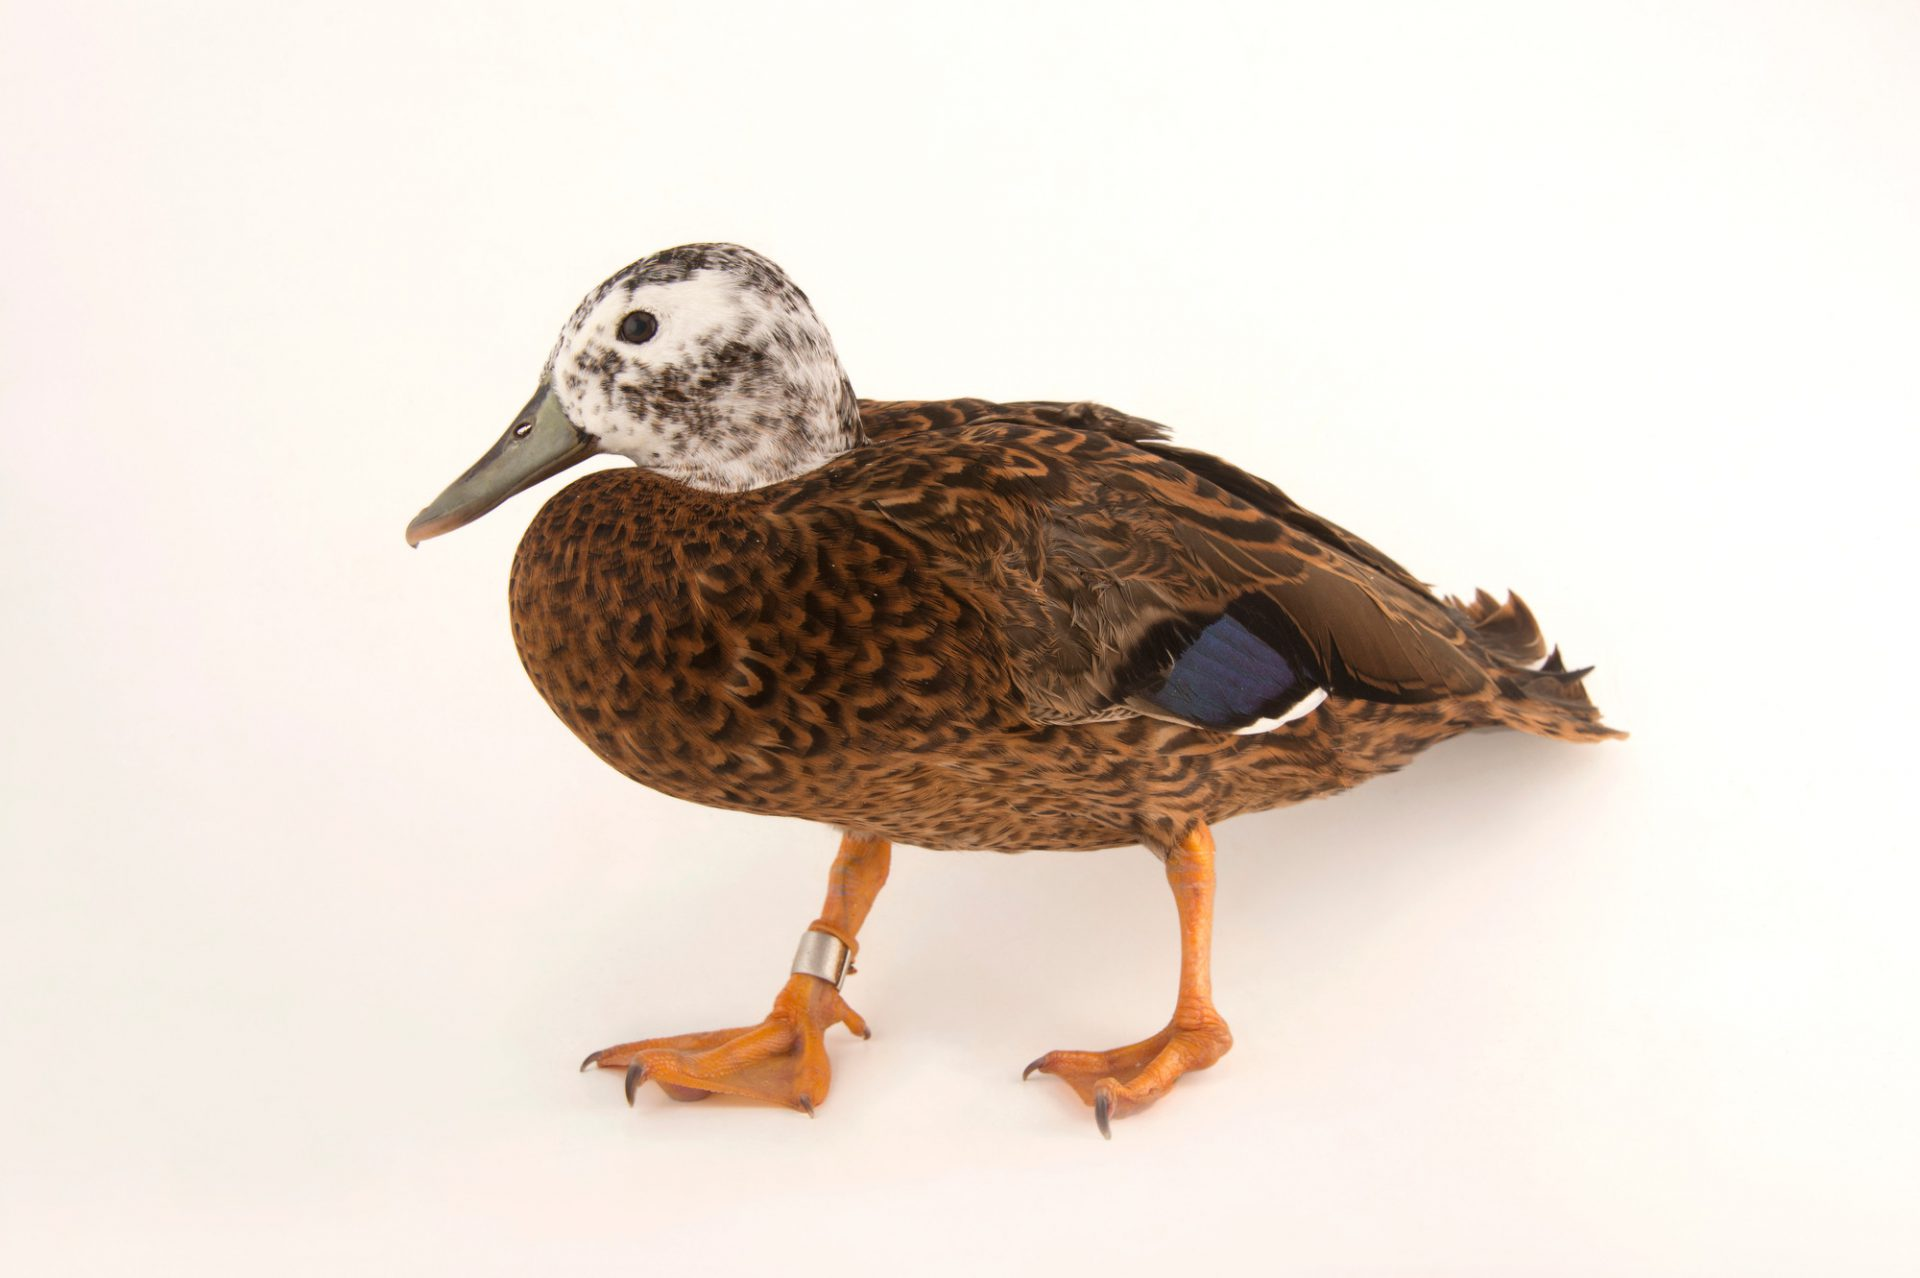 Picture of a critically endangered (IUCN) and federally endangered Laysan teal (Anas laysanensis) at the Palm Beach Zoo.